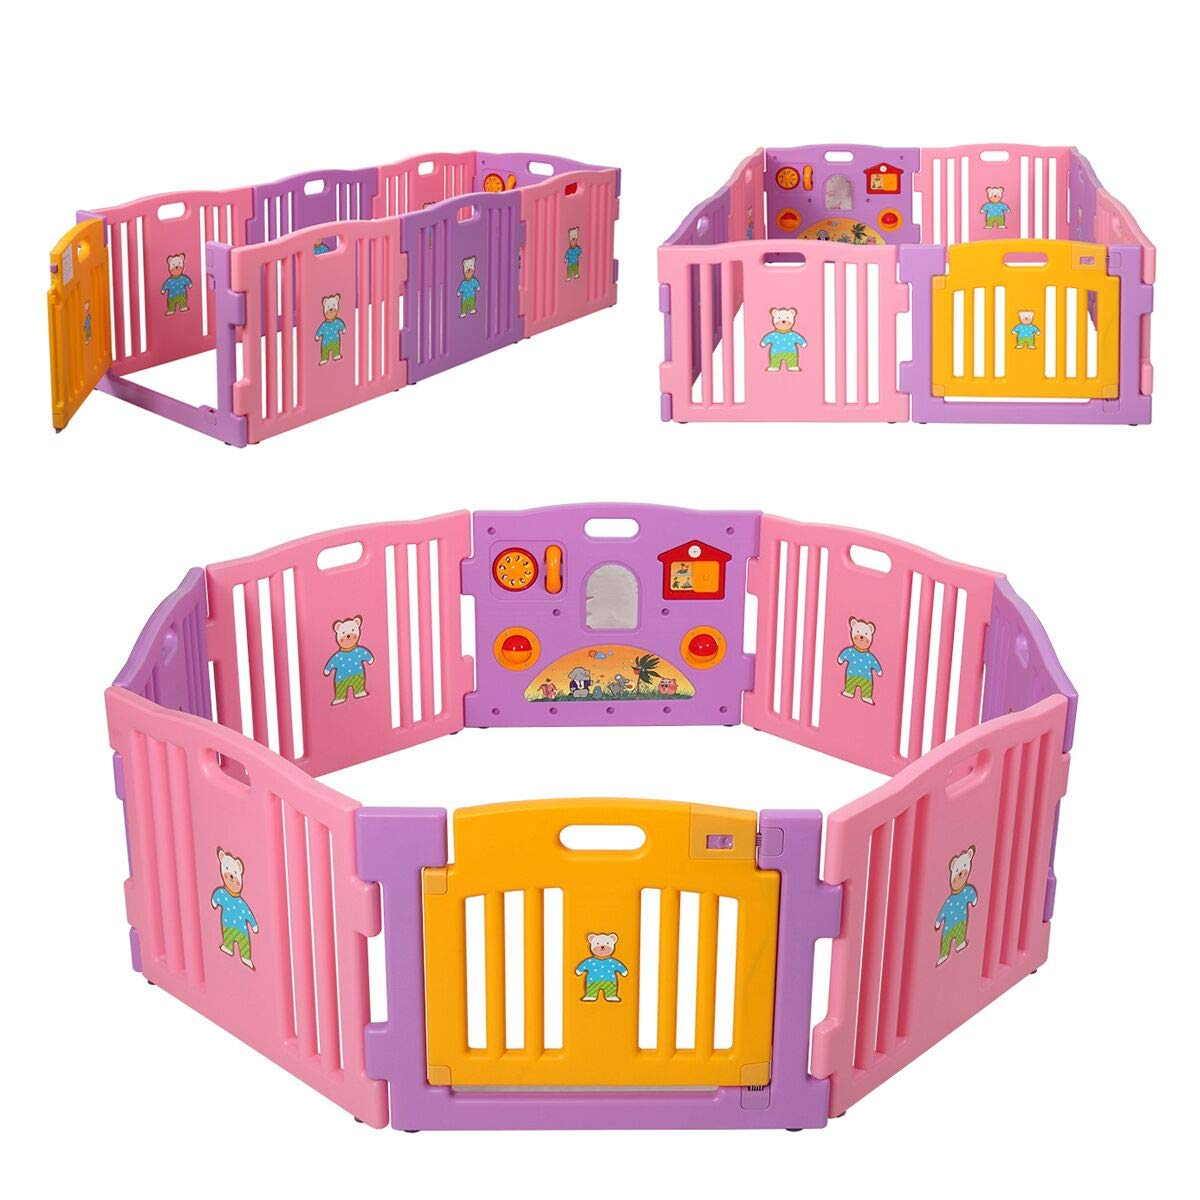 JAXPETY Baby Playpen Kids 8 Panel Safety Play Center Yard Home Indoor Outdoor New Pen (Pink)